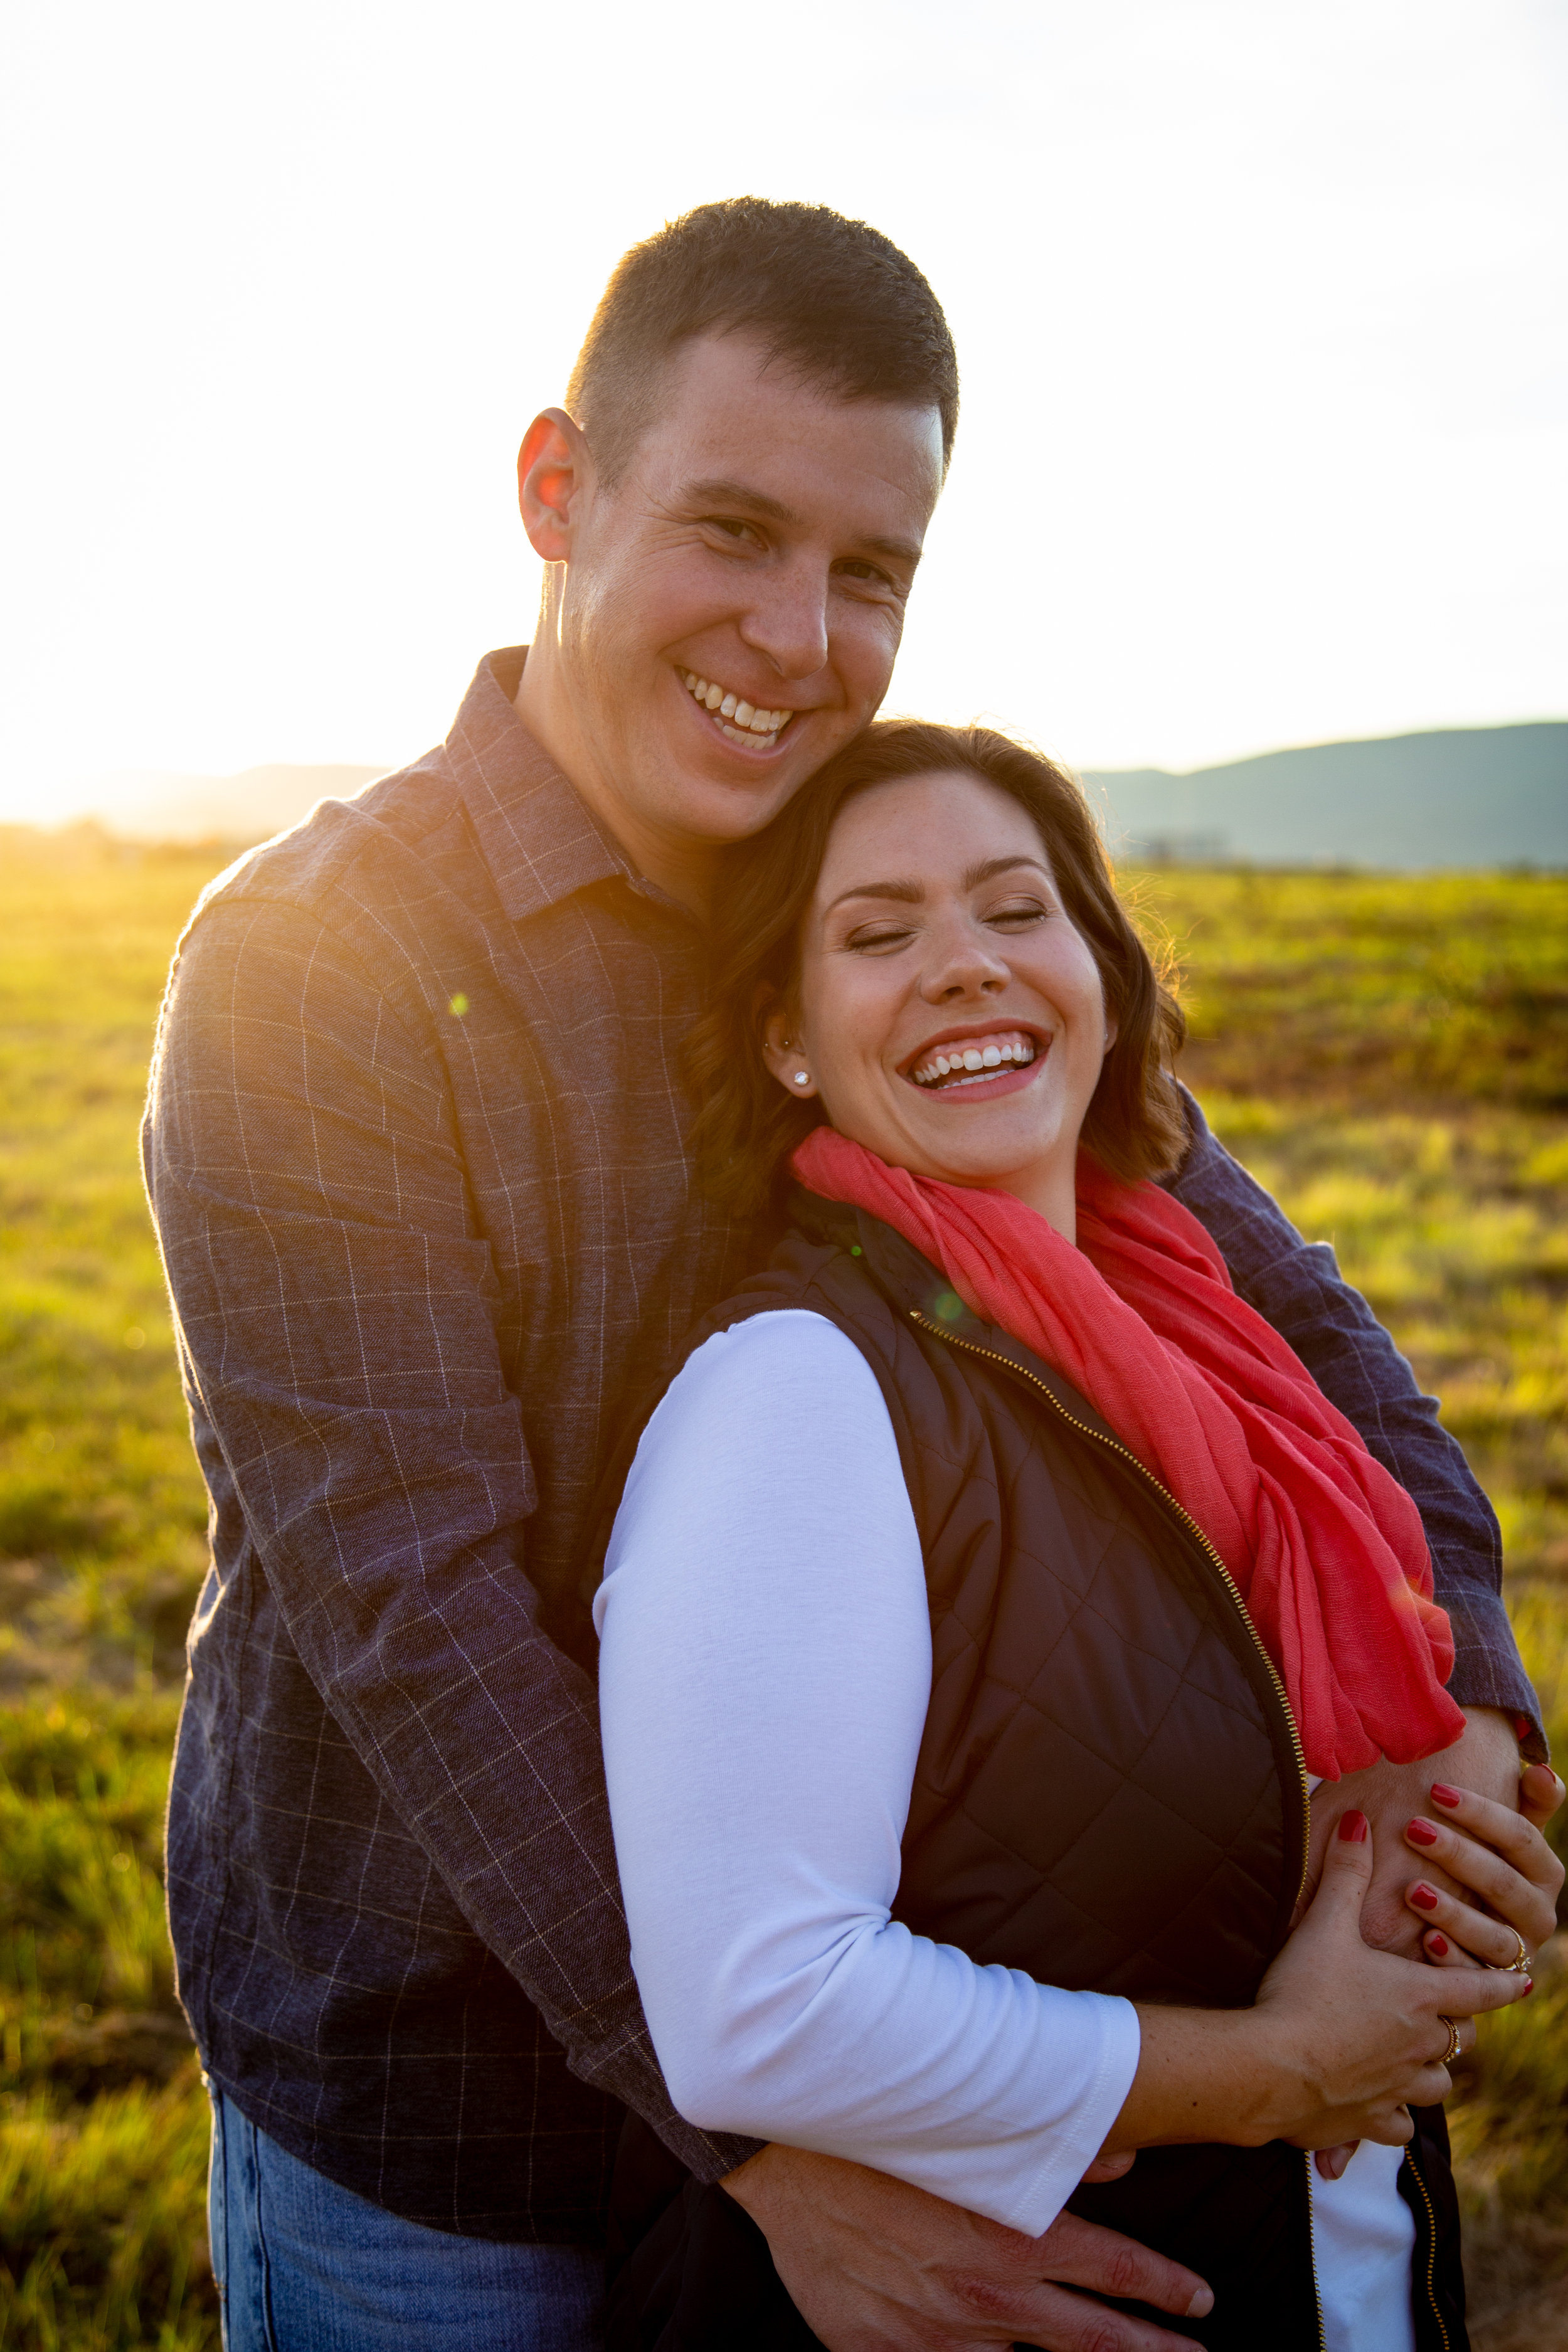 valley-view-shakers-roanoke-engagment-love-couple-outside-sun-flare-warm-love-smile-laughing-mountains